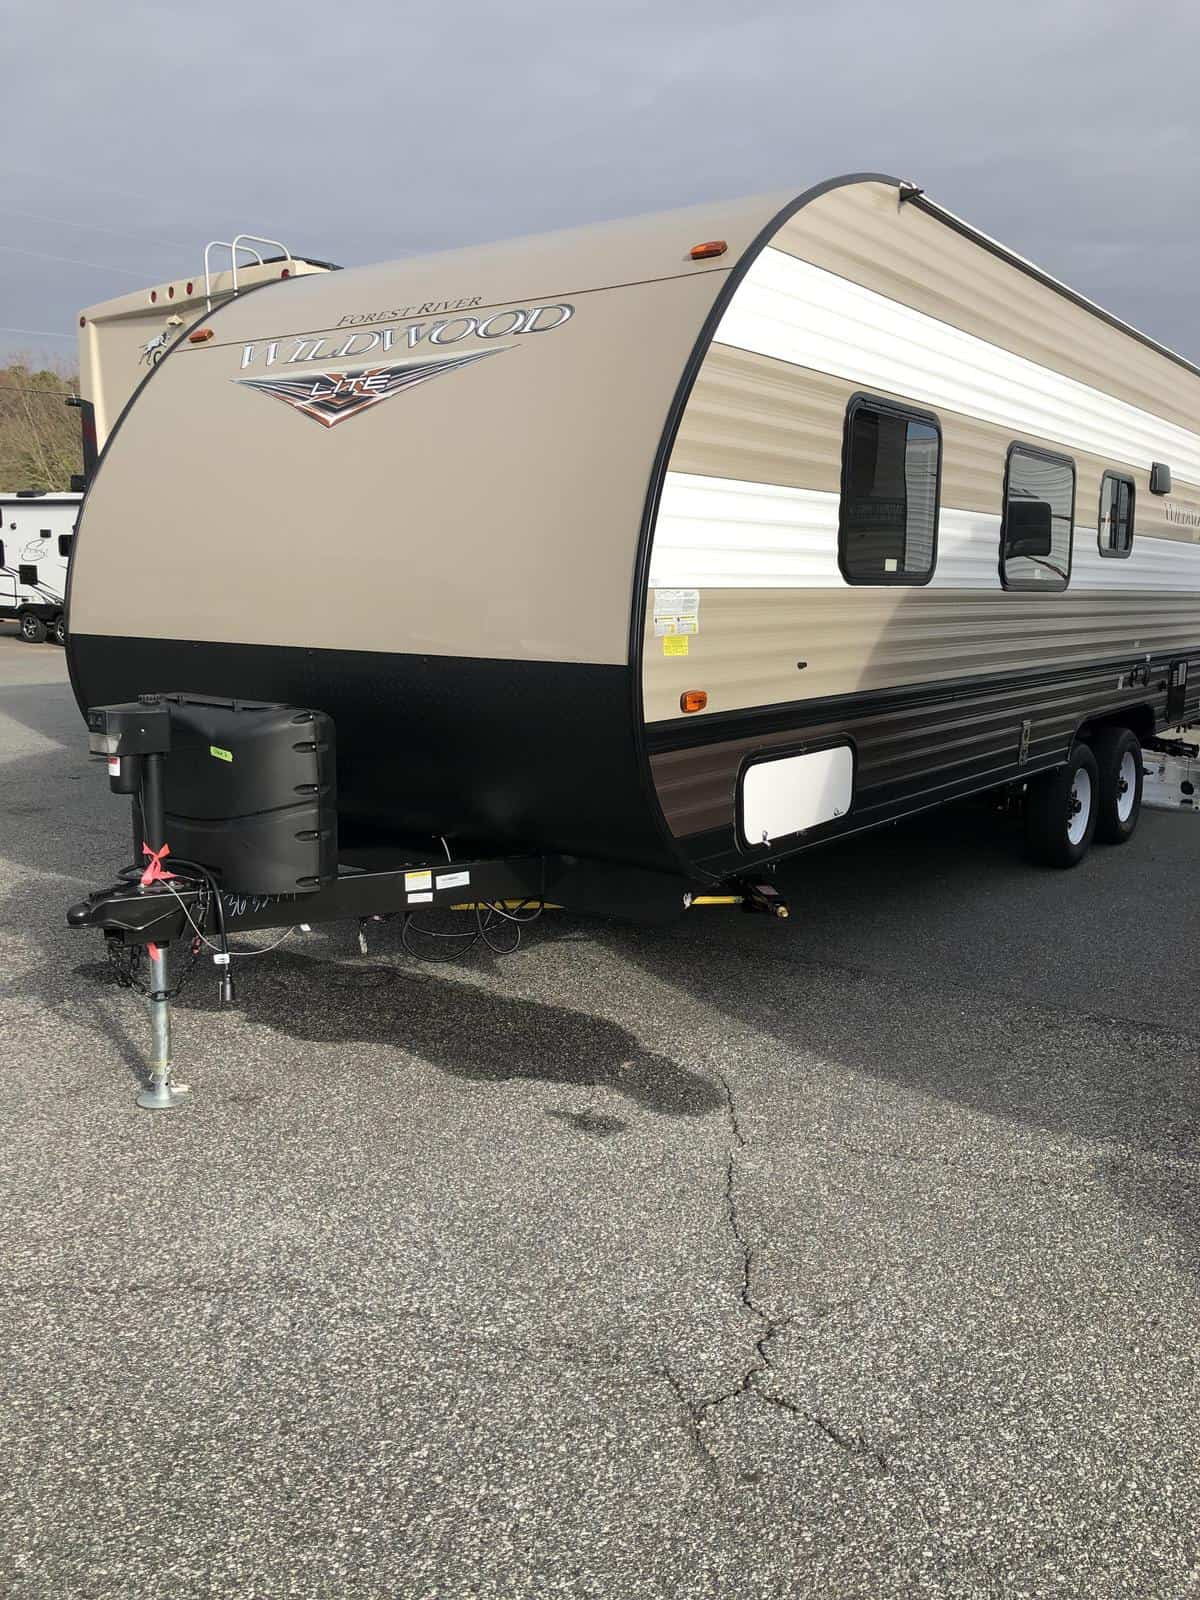 NEW 2019 Forest river Wildwood 241QBXL - Three Way Campers